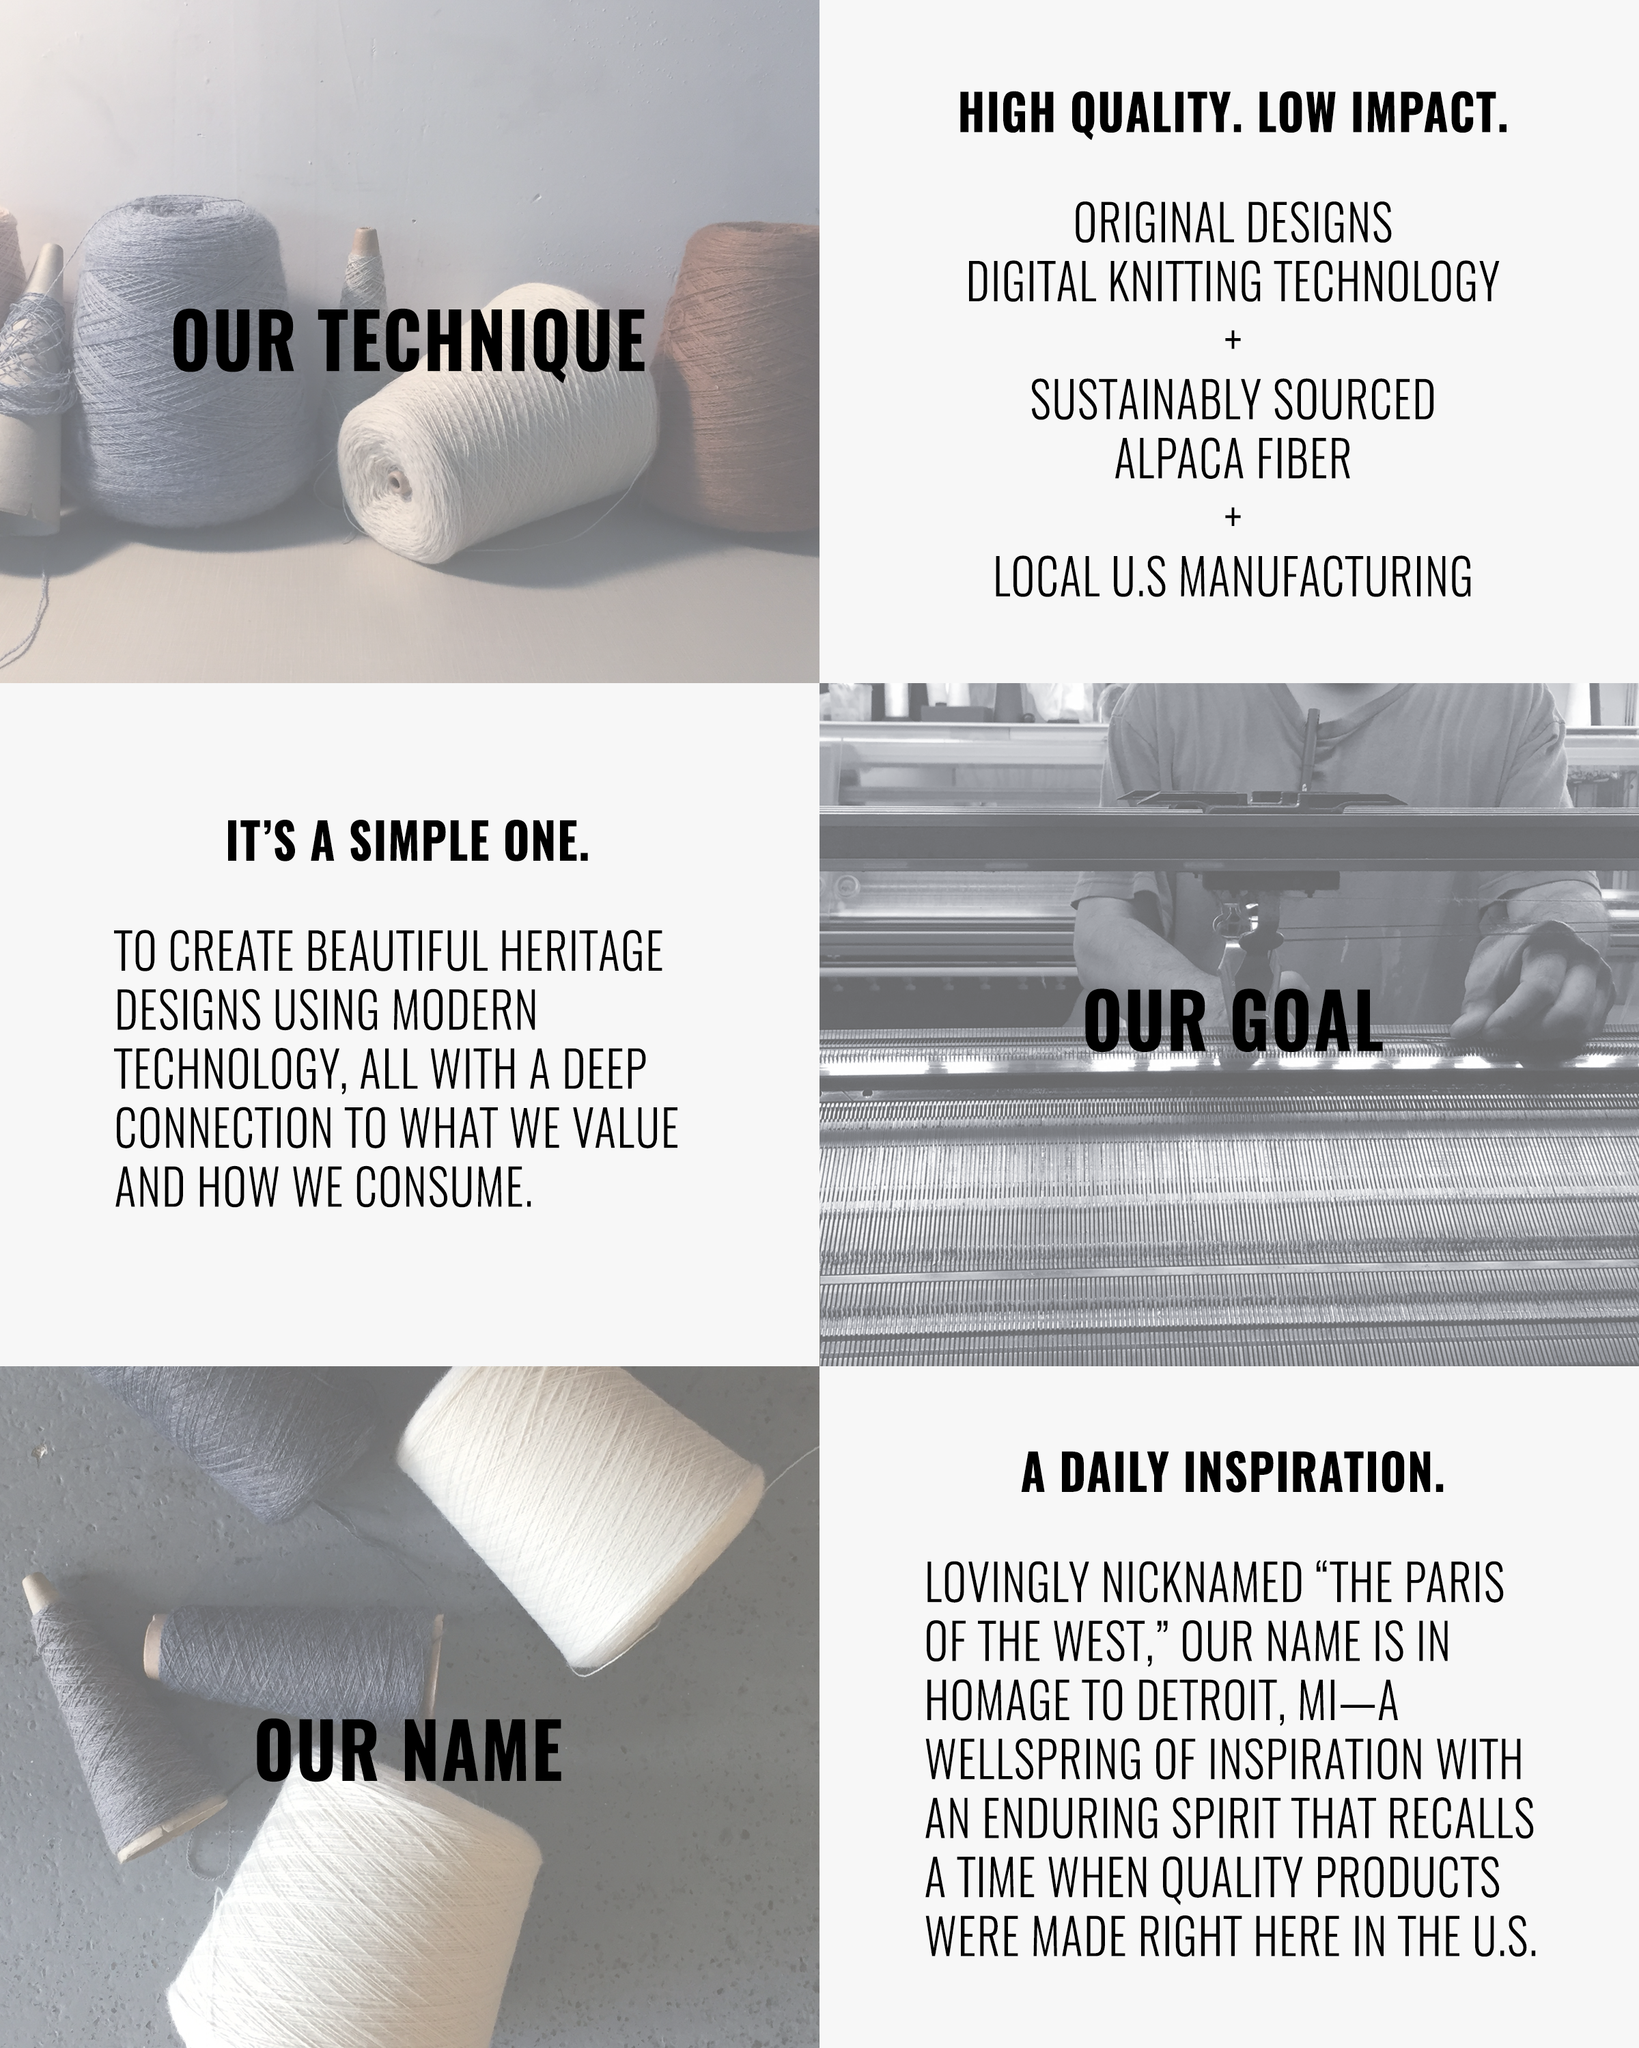 "Our Technique: High Quality. Low Impact. Original Designs Digital Knitting Technology + Sustainably Sourced Alpaca Fiber + Local U.S Manufacturing | Our Goal: It's a Simple One. To create beautiful heritage designs using modern technology, all with a deep connection to what we value and how we consume. | Our Name: A Daily Inspiration. Lovingly nicknamed ""The Paris of the West,"" our name is in homage to Detroit, MI—a wellspring of inspiration with an enduring spirit that recalls a time when quality products were made right here in the U.S."